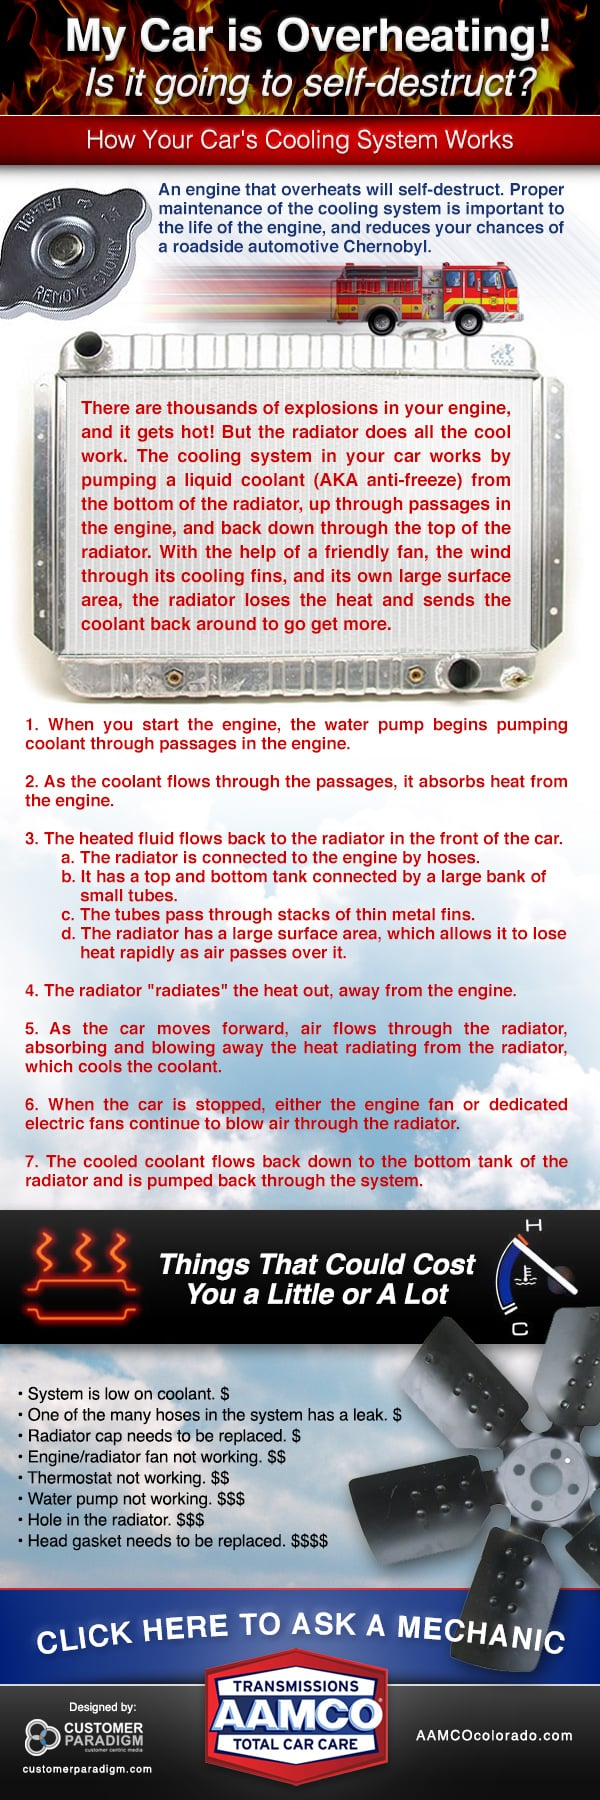 Infographic on engine overheating and how a car's cooling system works.